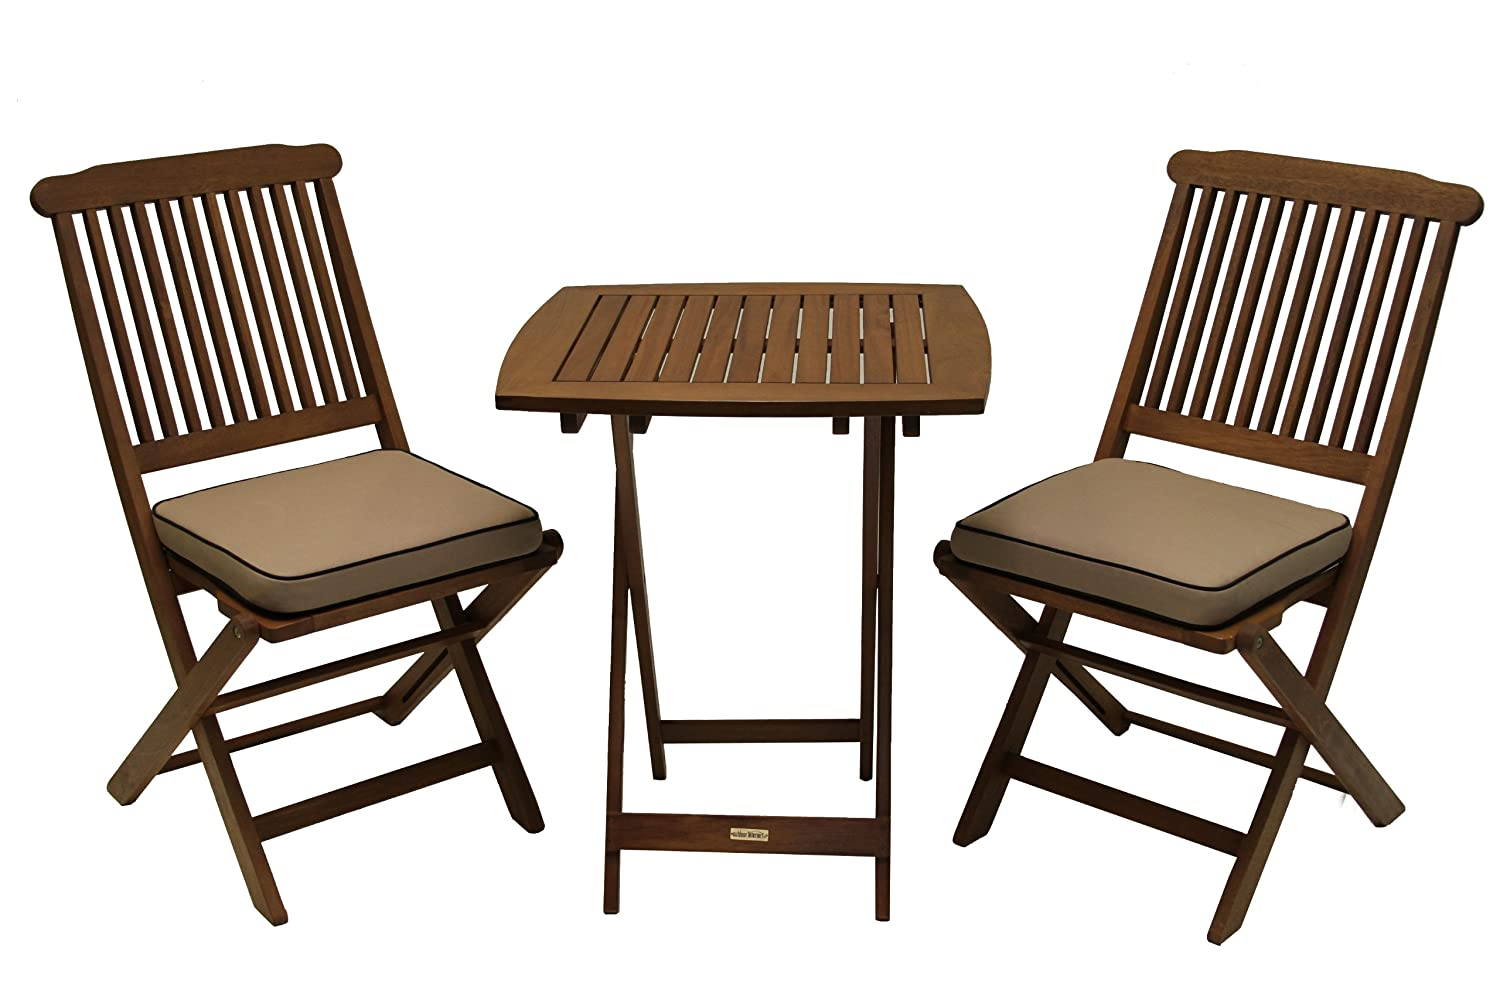 Amazon.com: Wood - Patio Furniture Sets / Patio Furniture ...